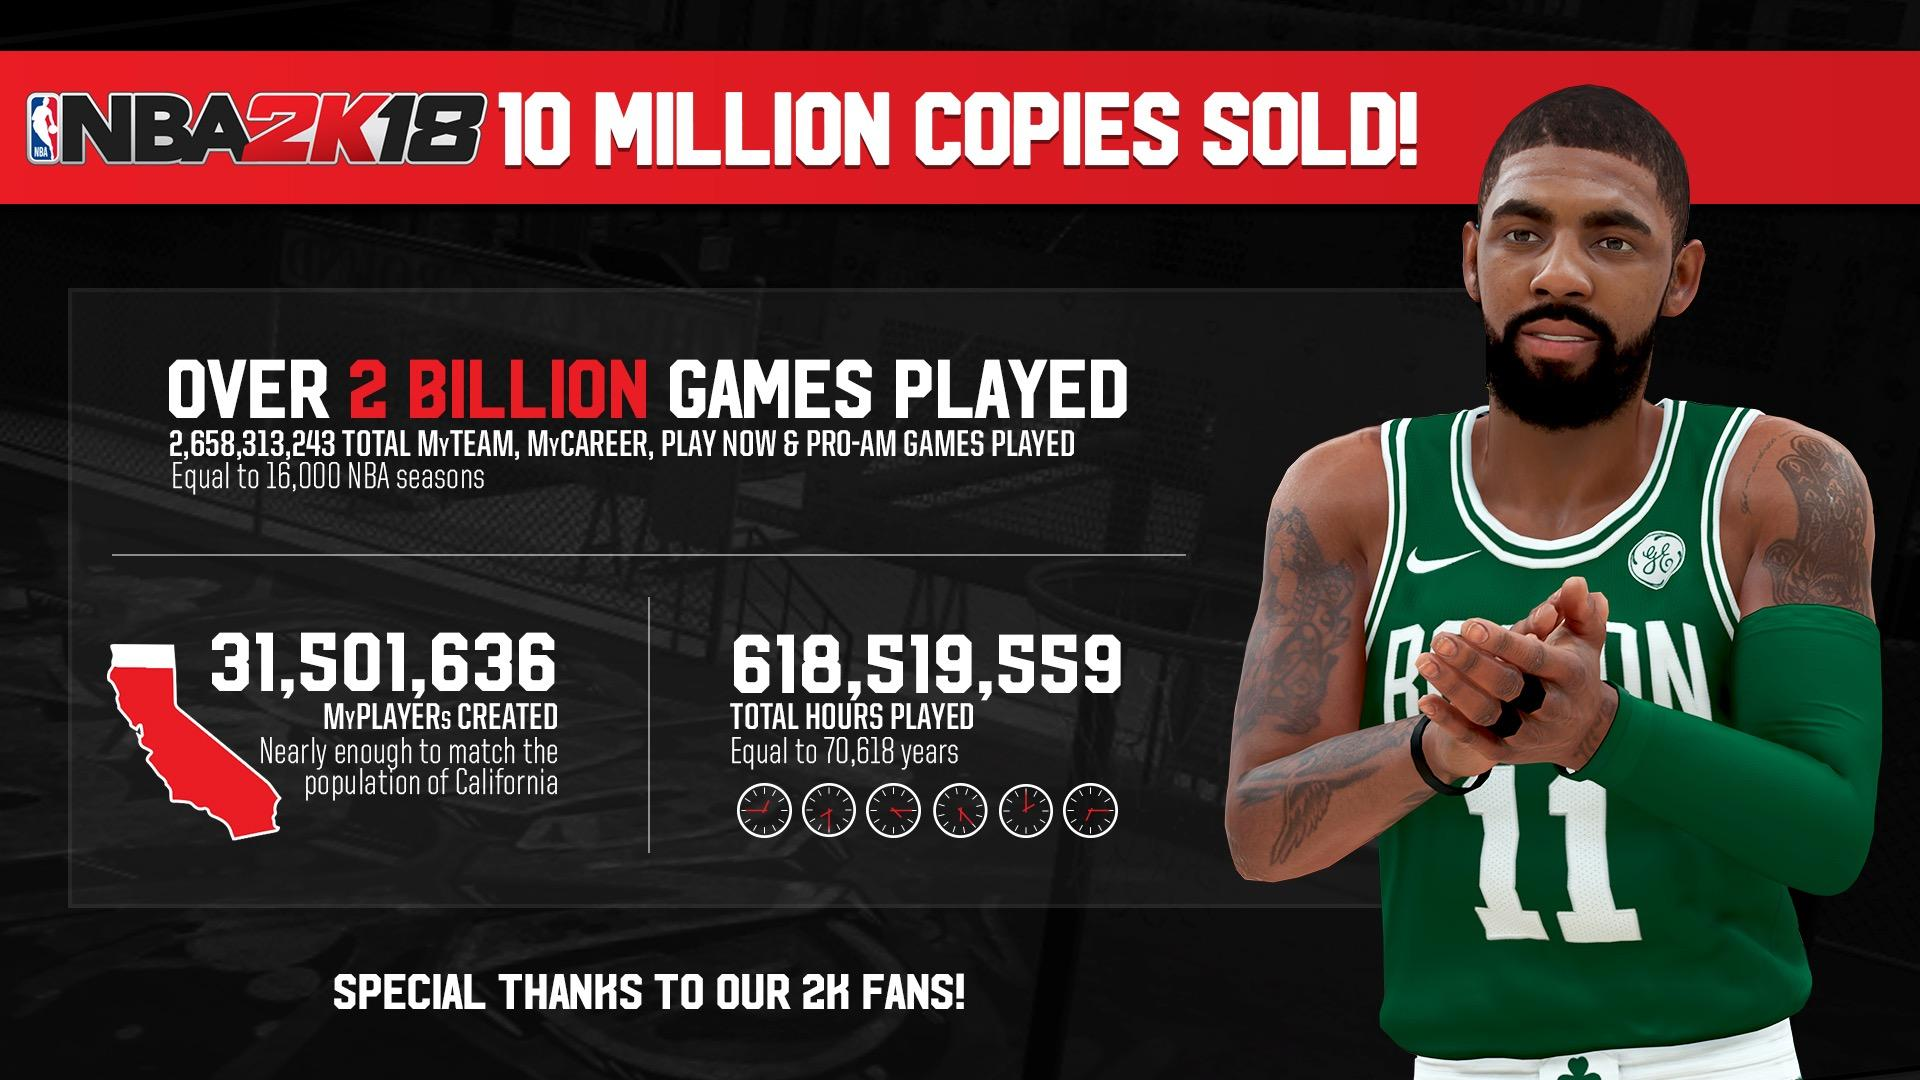 nba 2k18 has netted 10 million  u0026 39 sold-in u0026 39  copies at retail